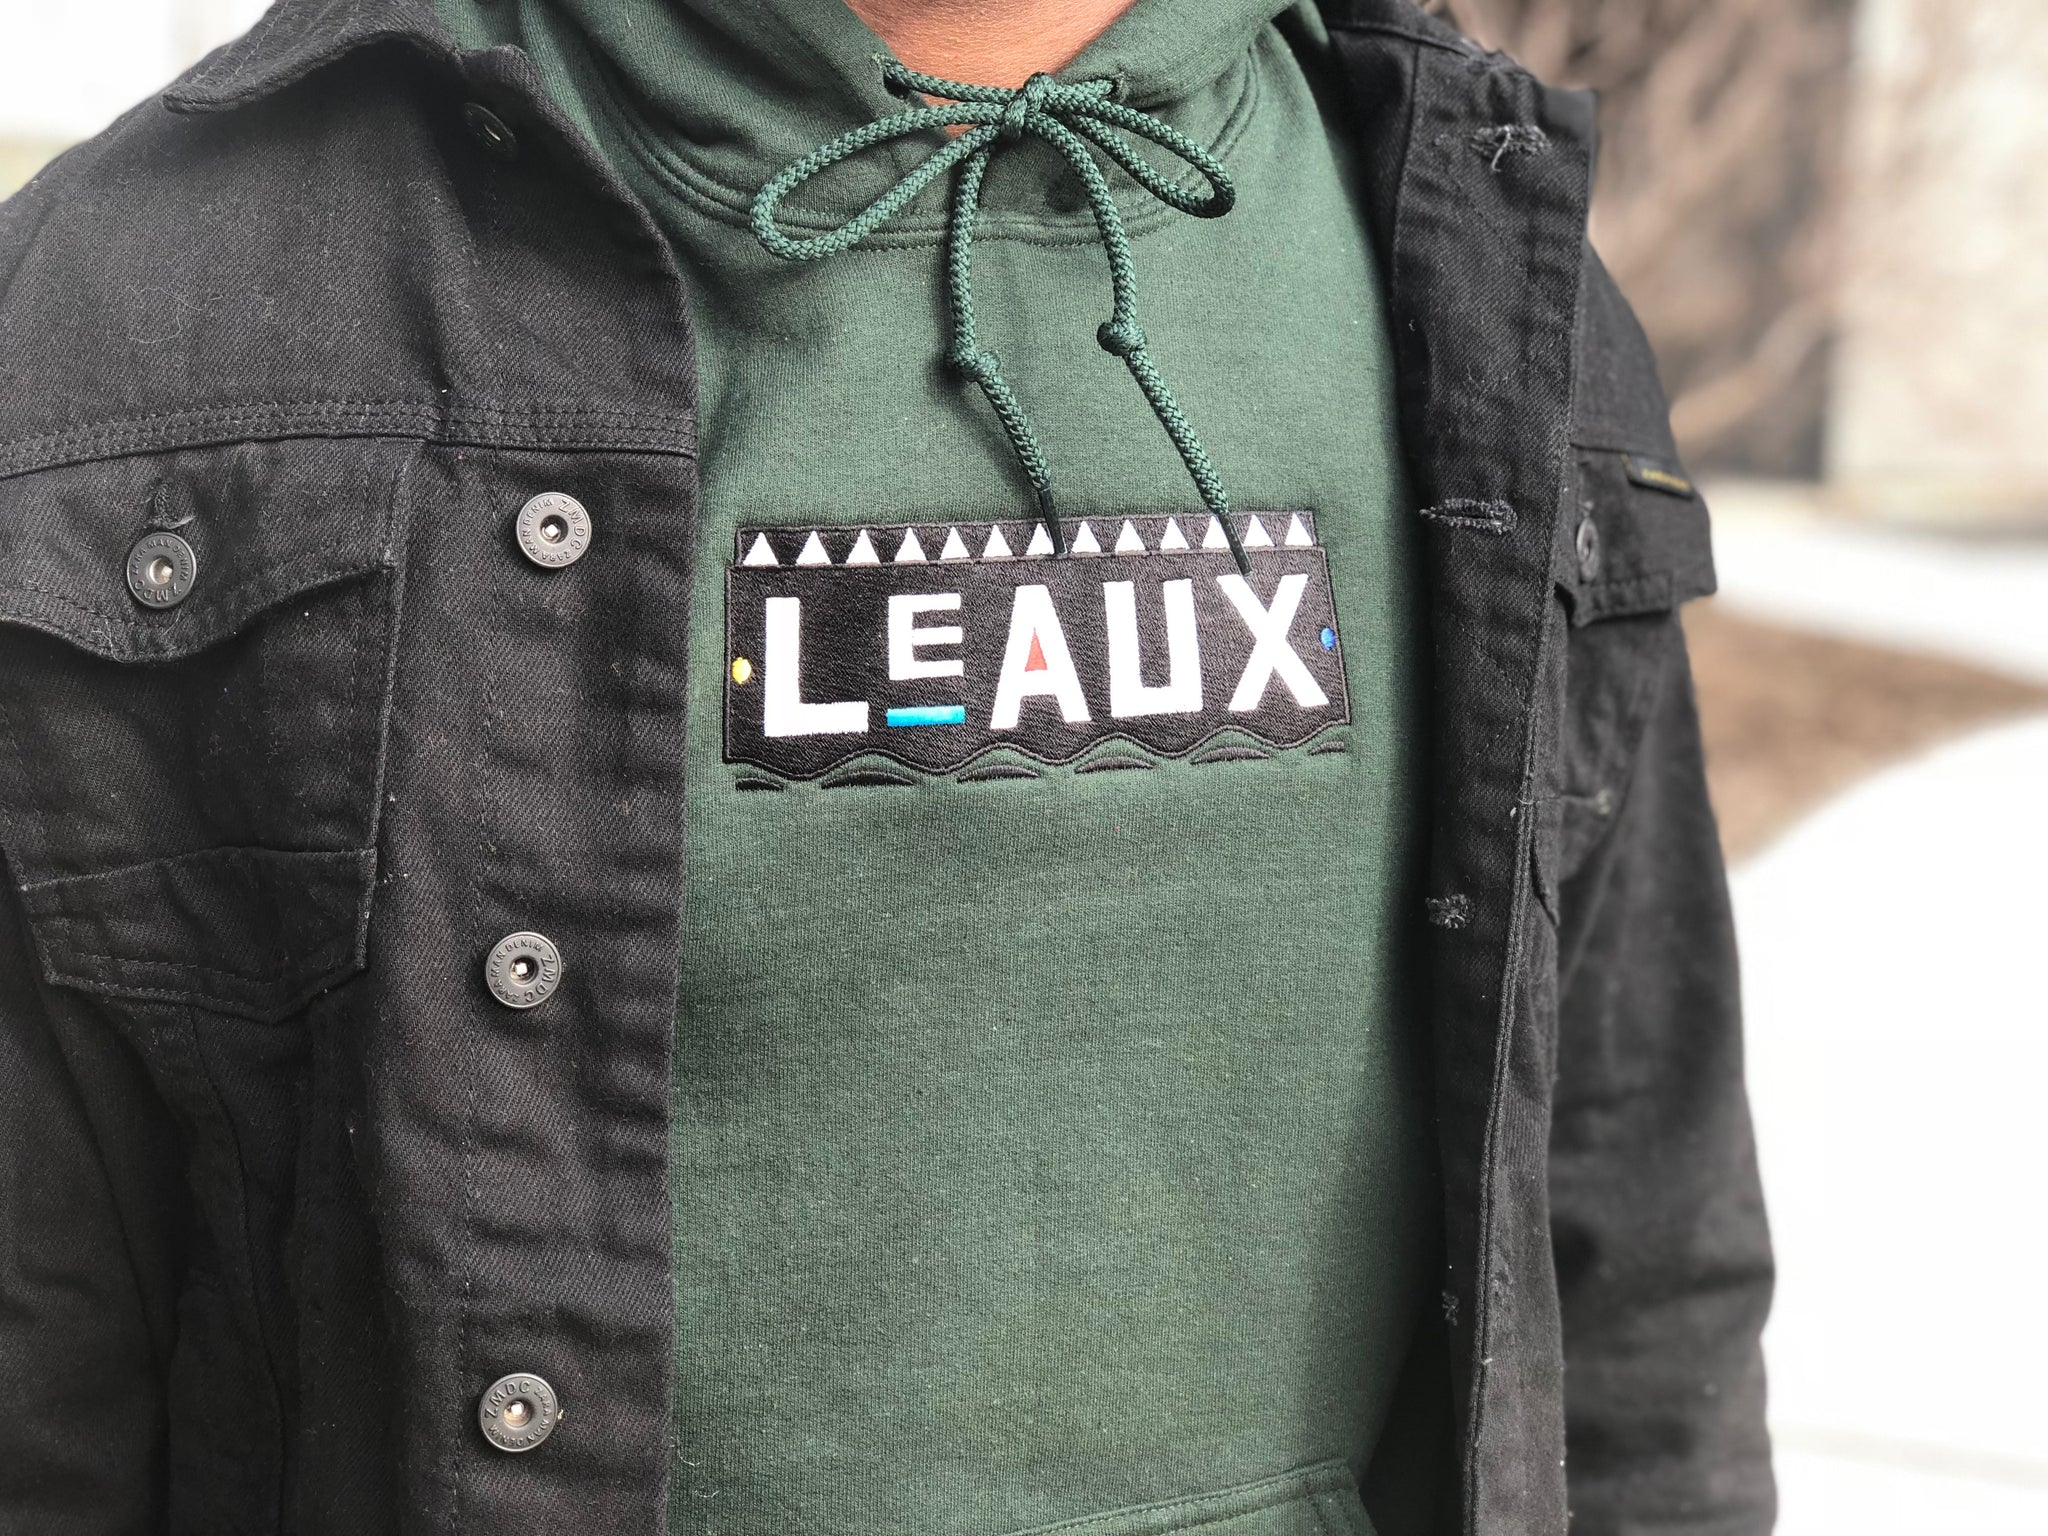 2017 Martin Leaux-rence Hoodie